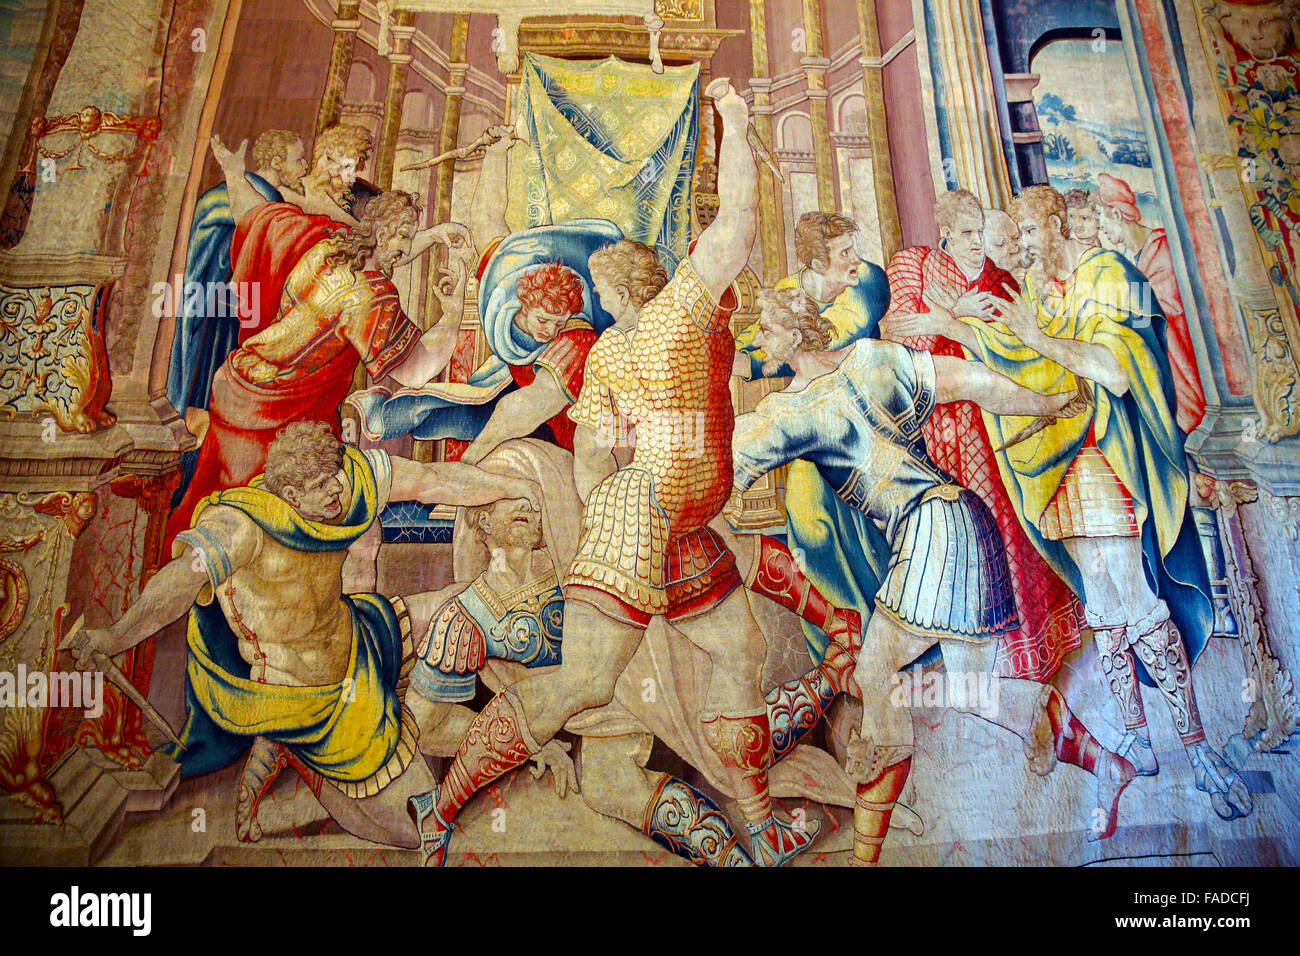 Tapestry depicting the Death of Julius Caesar in the Gallery of Tapestries in the Vatican Museum. - Stock Image